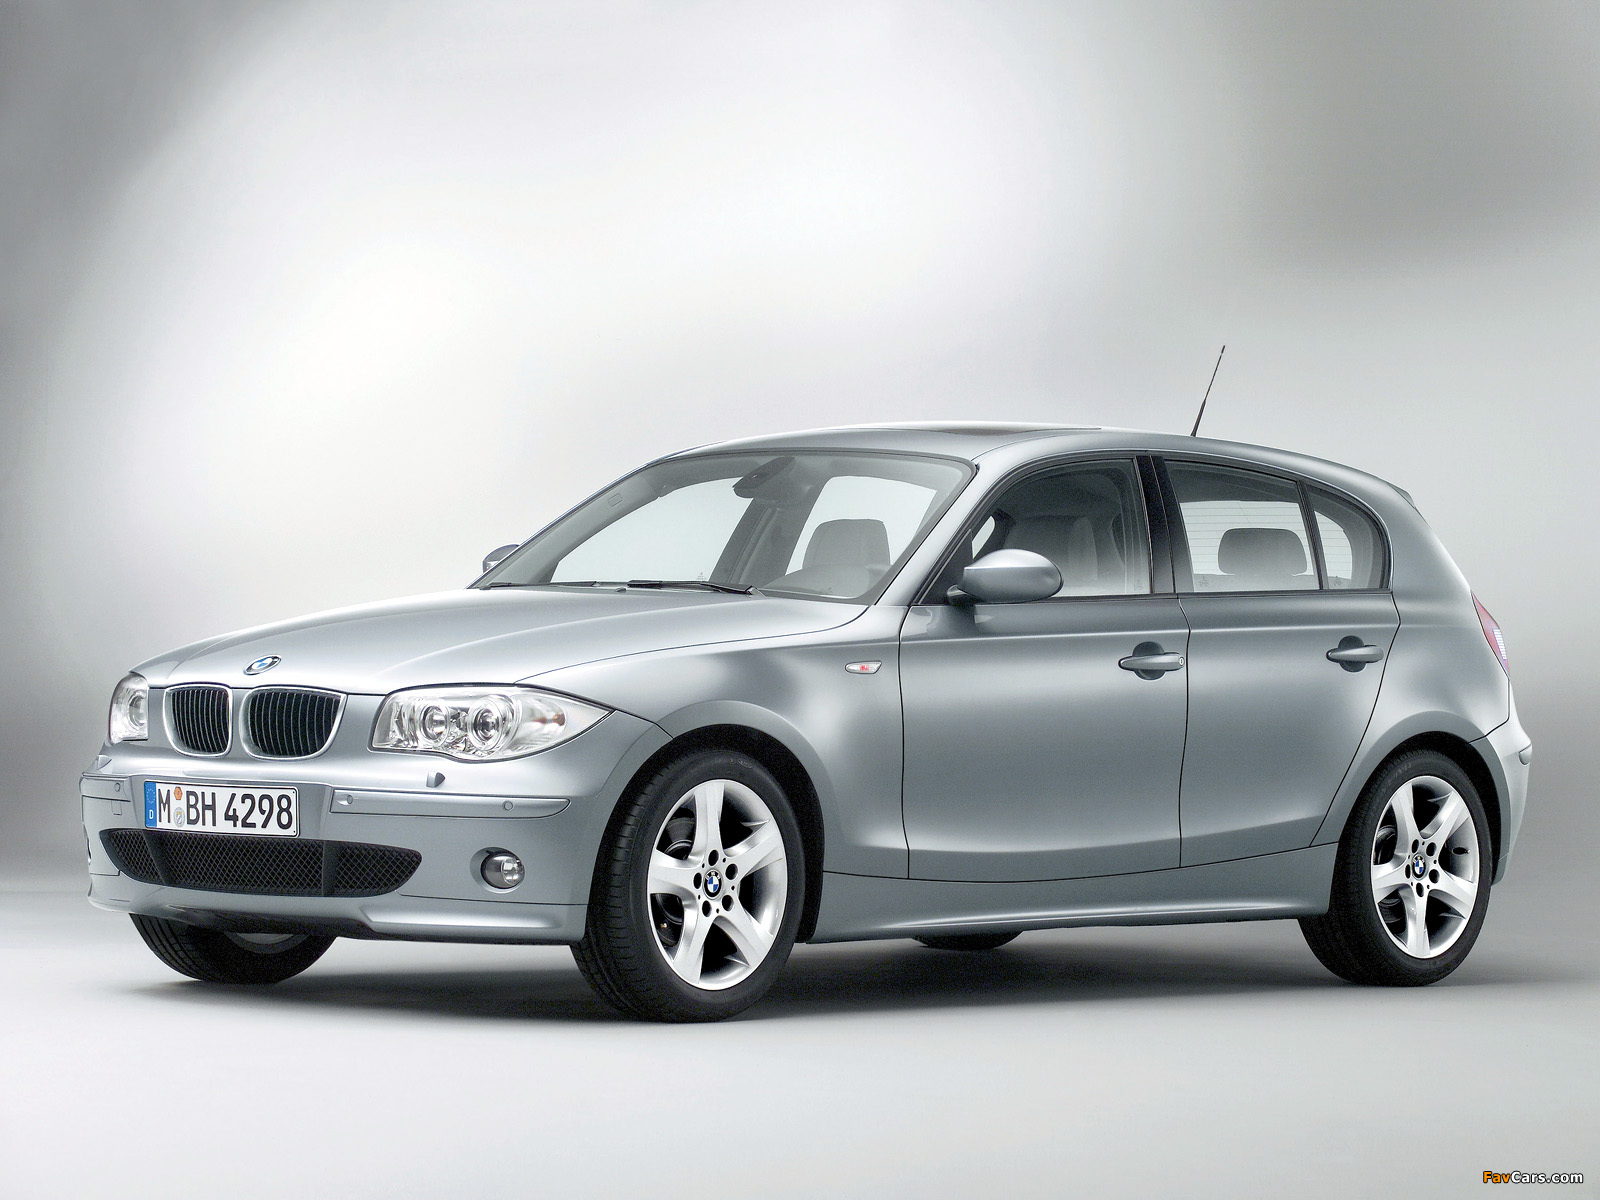 bmw_1_series_e81-e88_2004_images_1.jpg